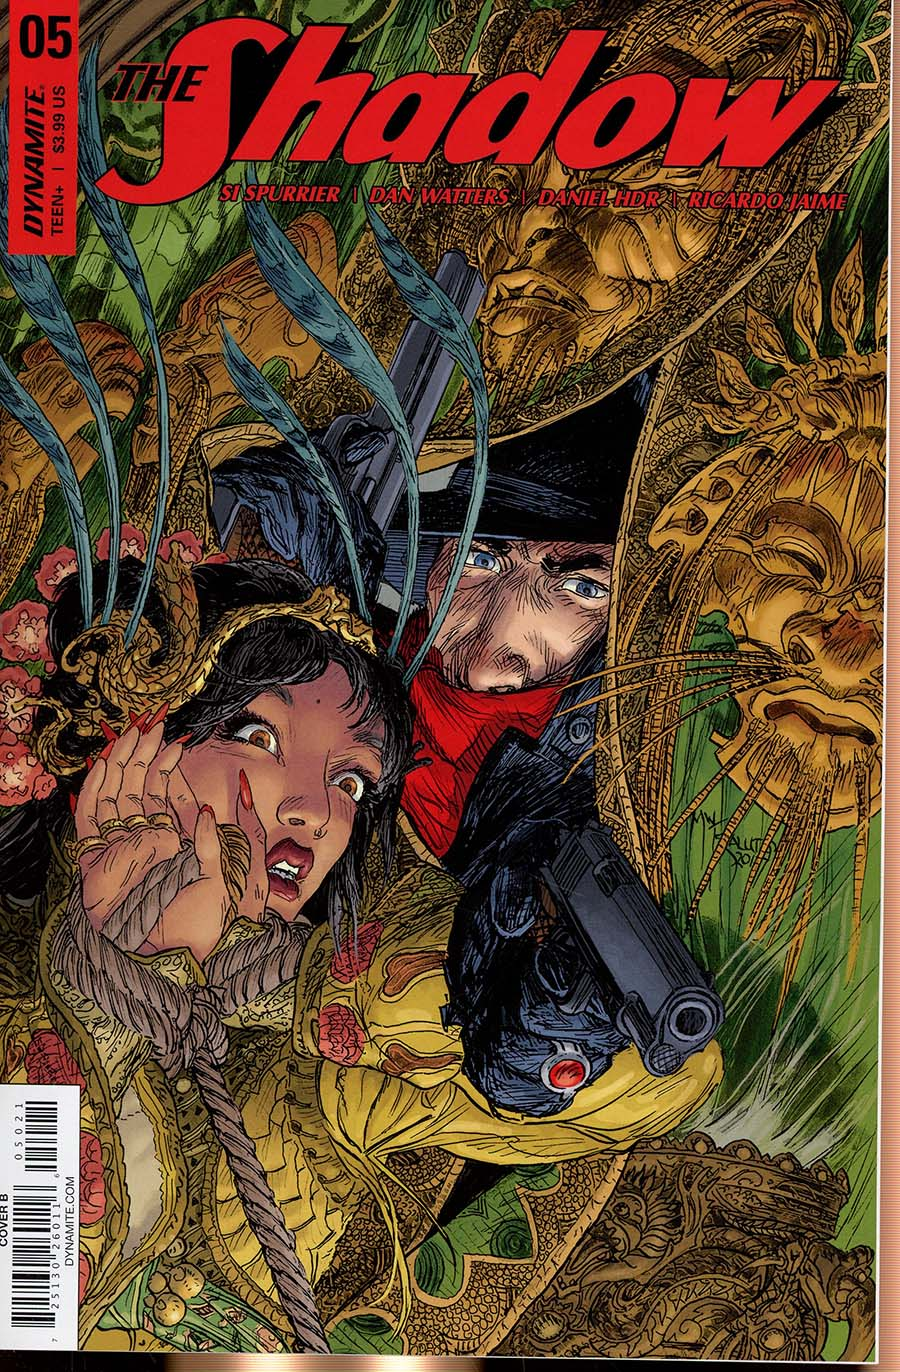 Shadow Vol 7 #5 Cover B Variant Michael William Kaluta Cover